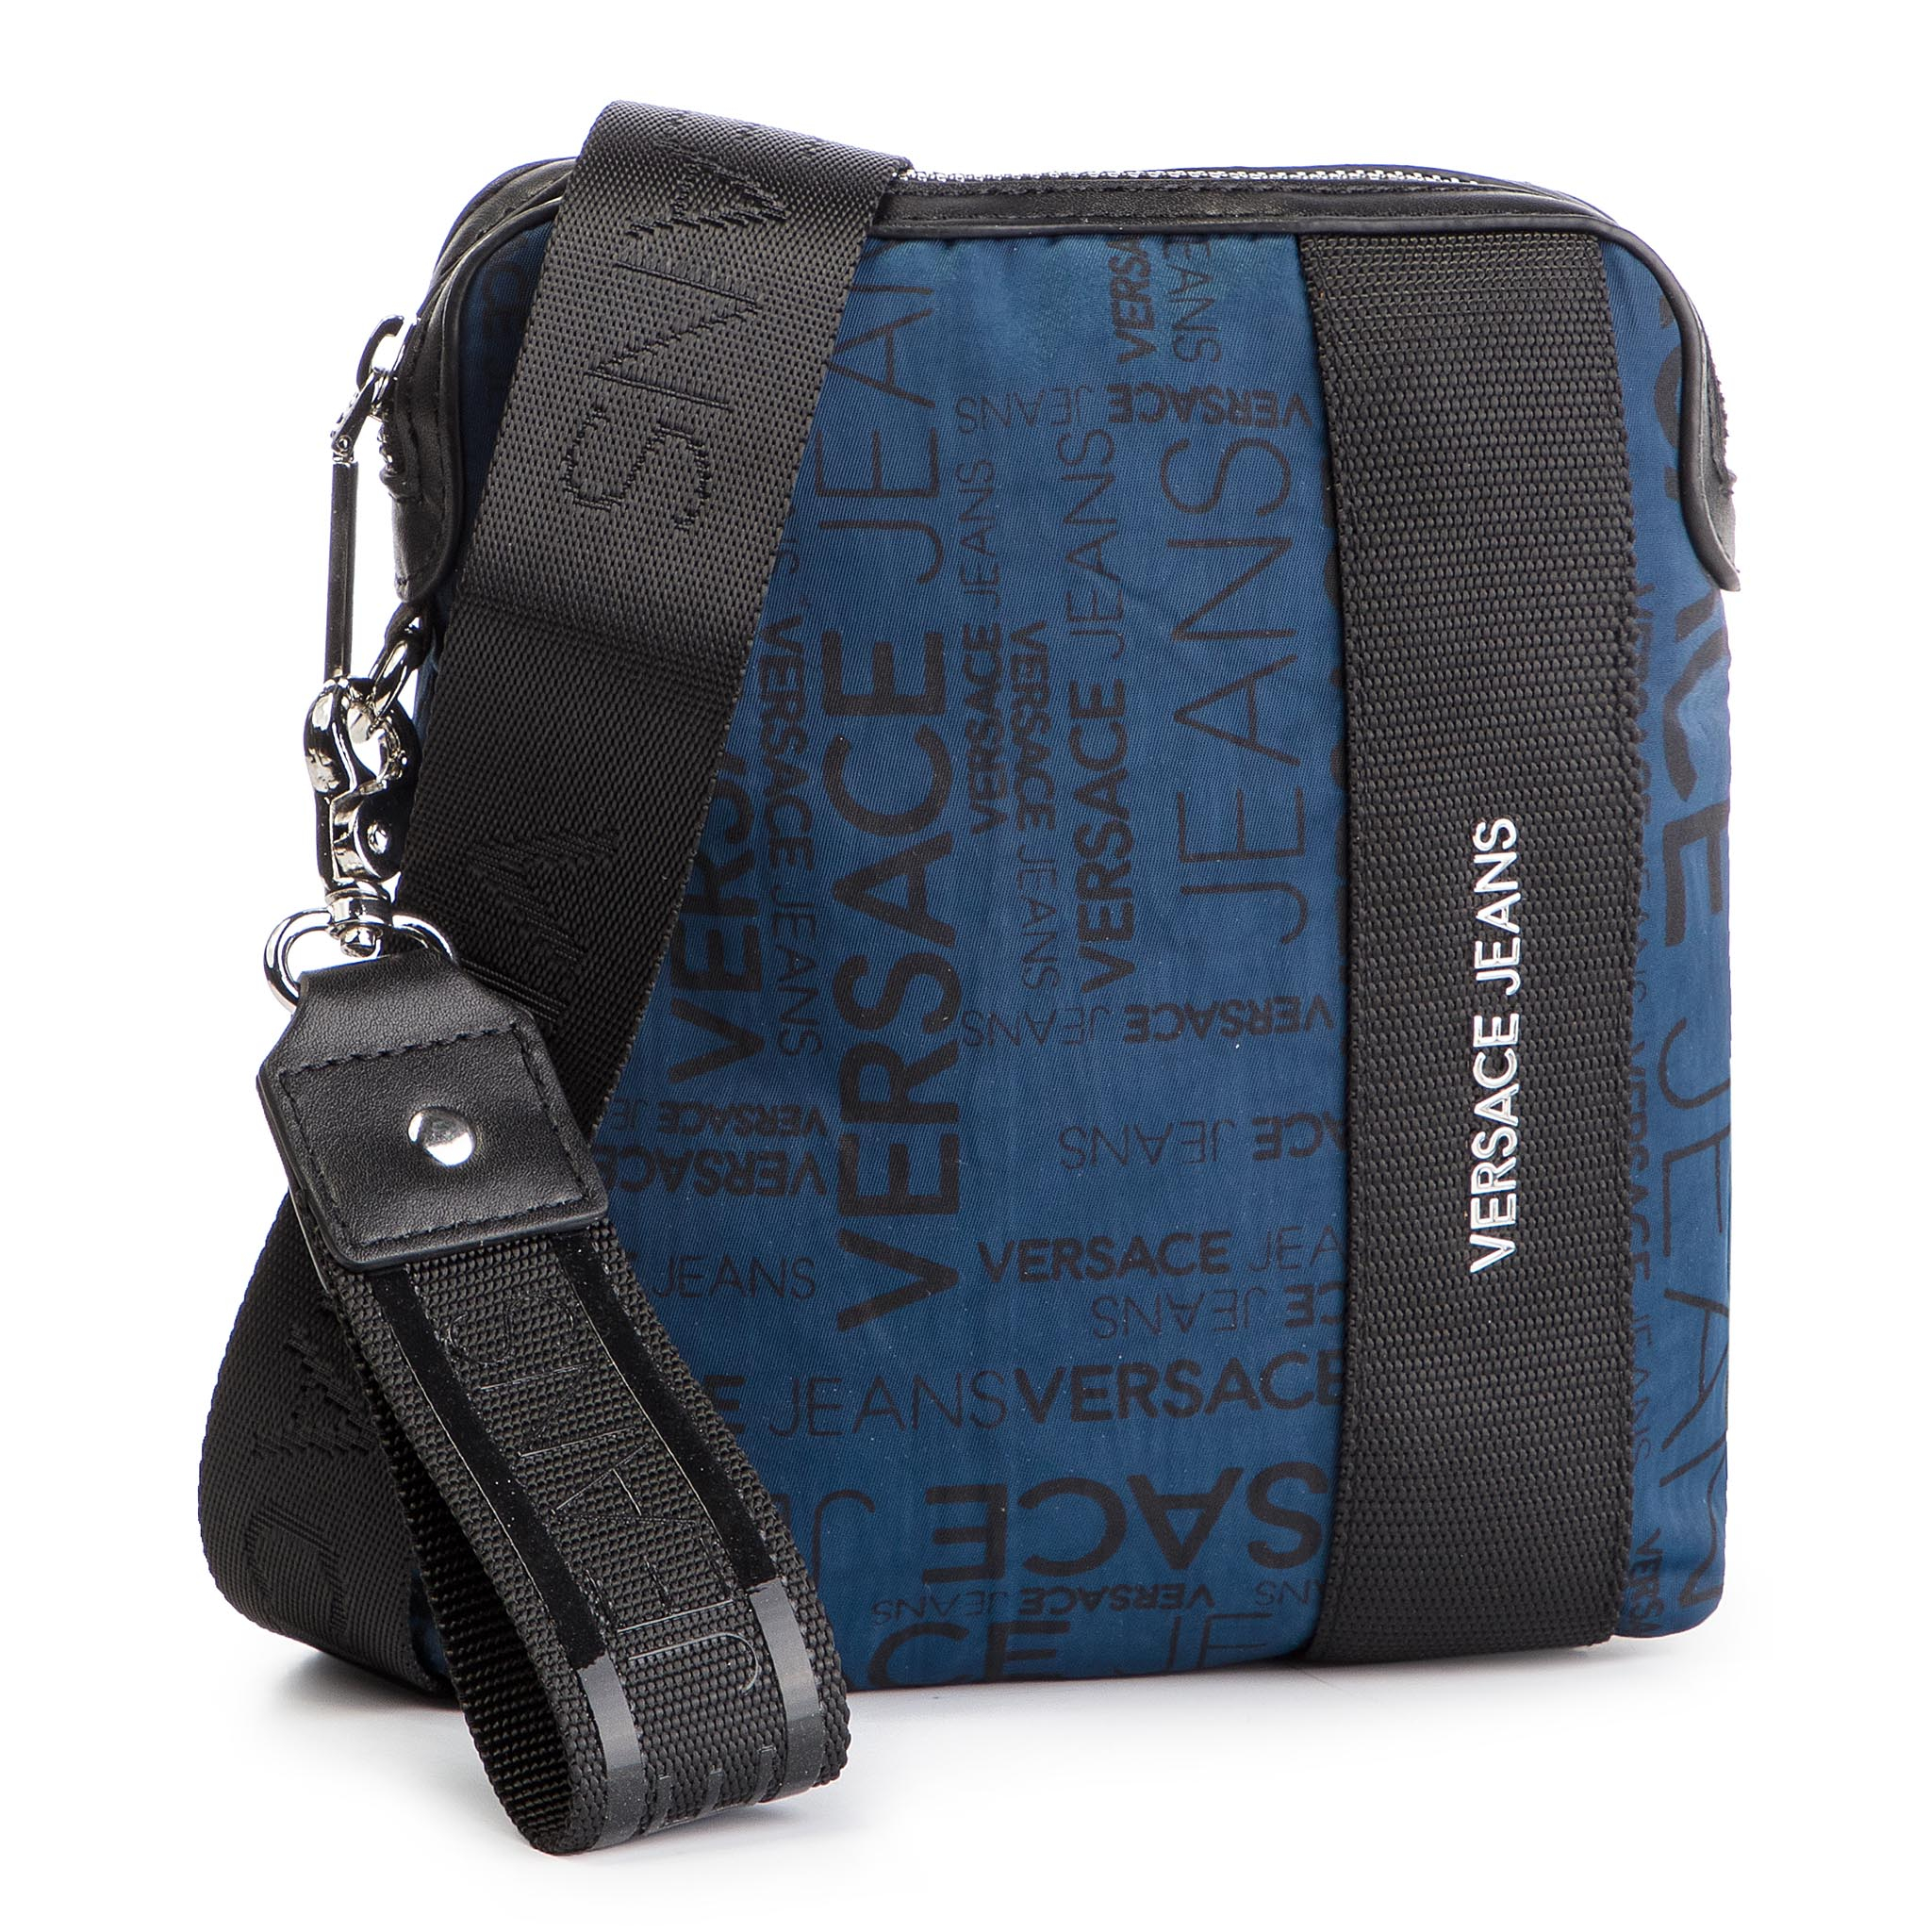 14b71e78436 Messenger Bag VERSACE JEANS - E1YTBB01 70890 MI9 - Men's ...